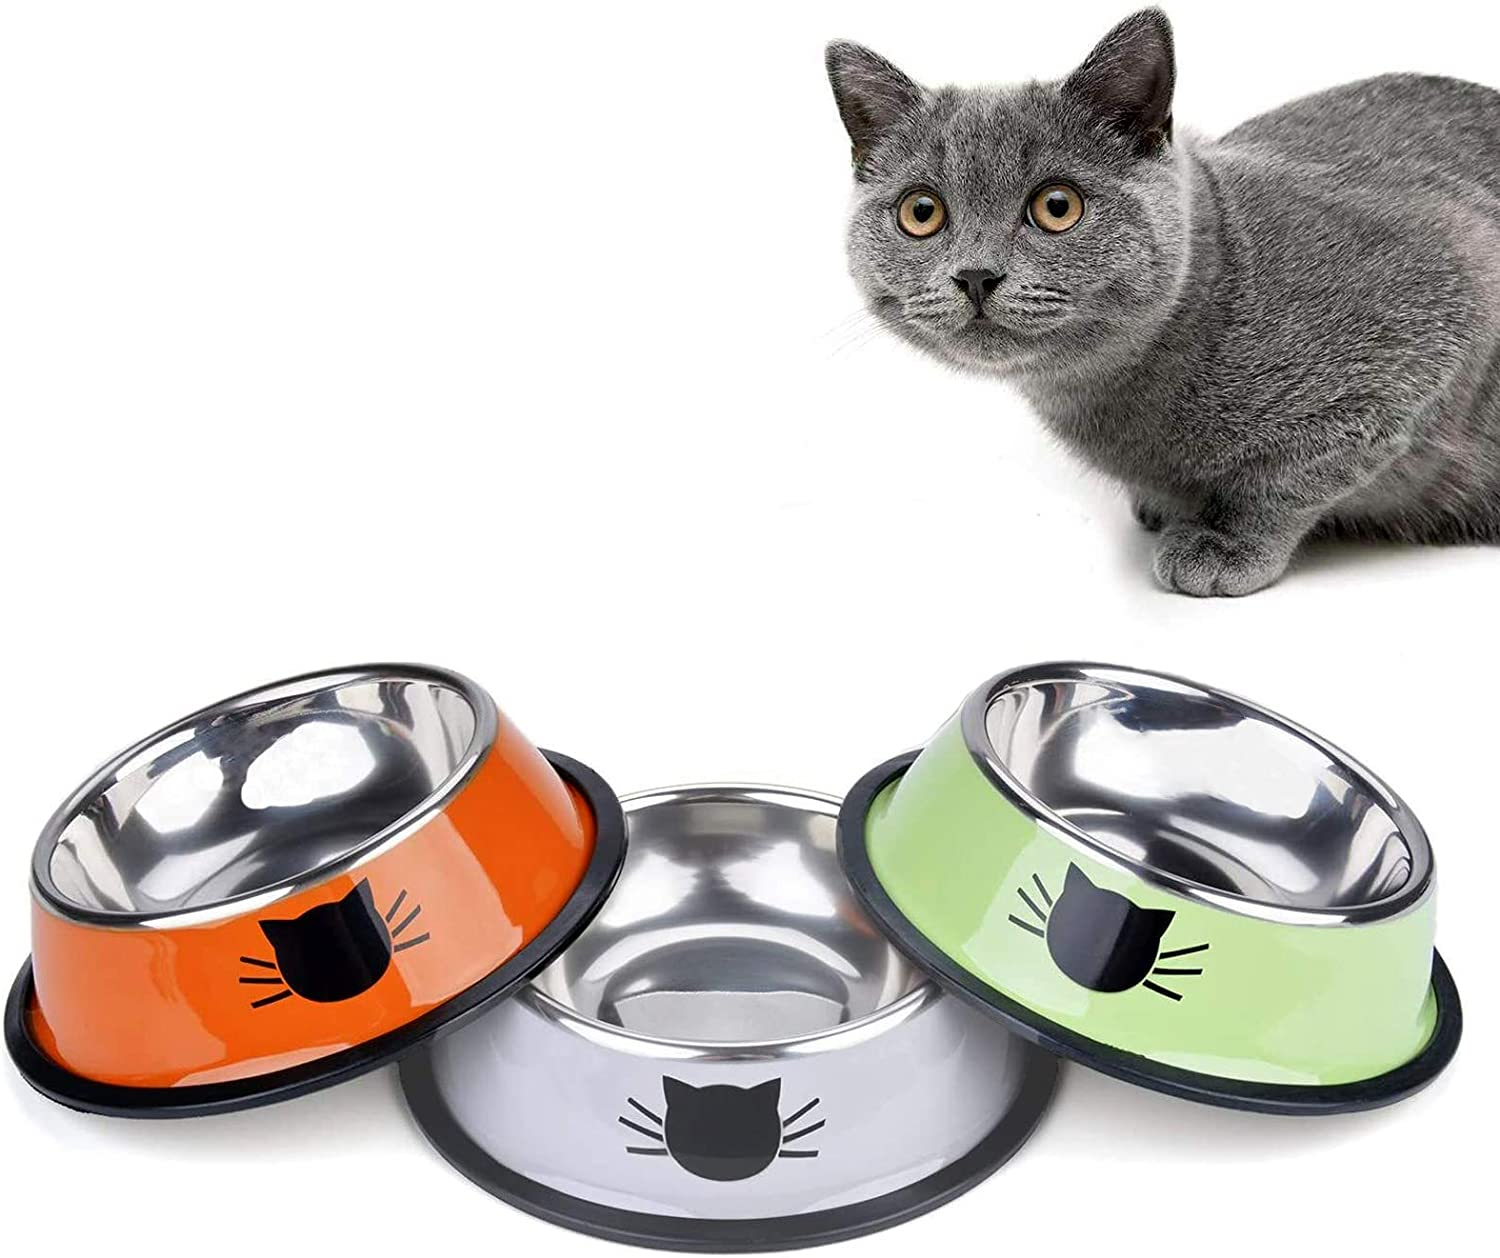 Kalimdor Cat Bowl Pet Bowl, Stainless Steel Cat Food Water Bowl with Non-Slip Stackable Pet Bowl for Cat, Kitten, Puppy, Small Dog (3 Pack - Grey & Green & Orange)